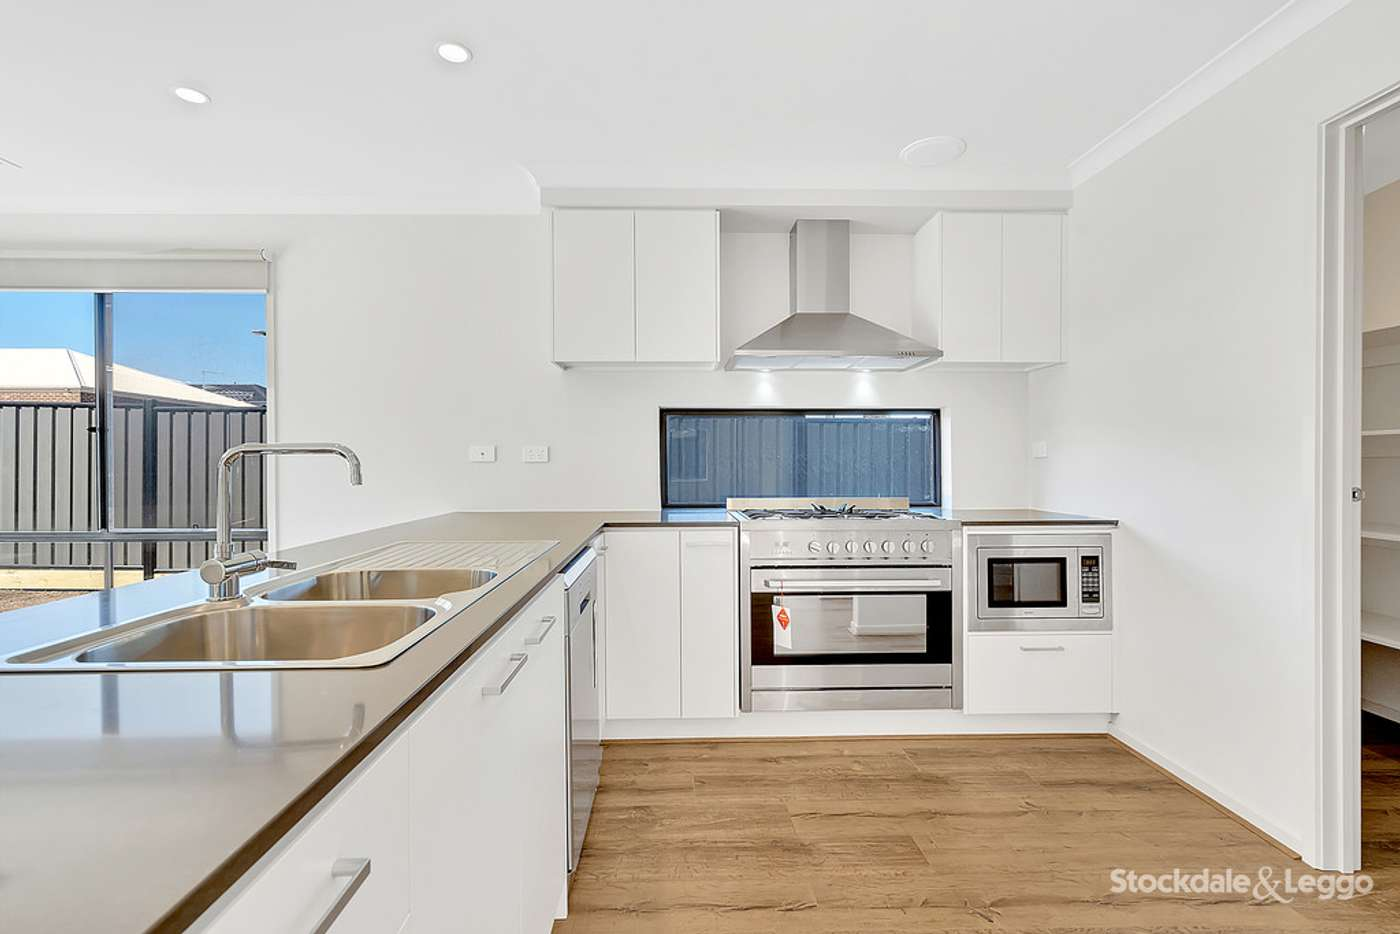 Sixth view of Homely house listing, 5 Prestige Drive, Kalkallo VIC 3064